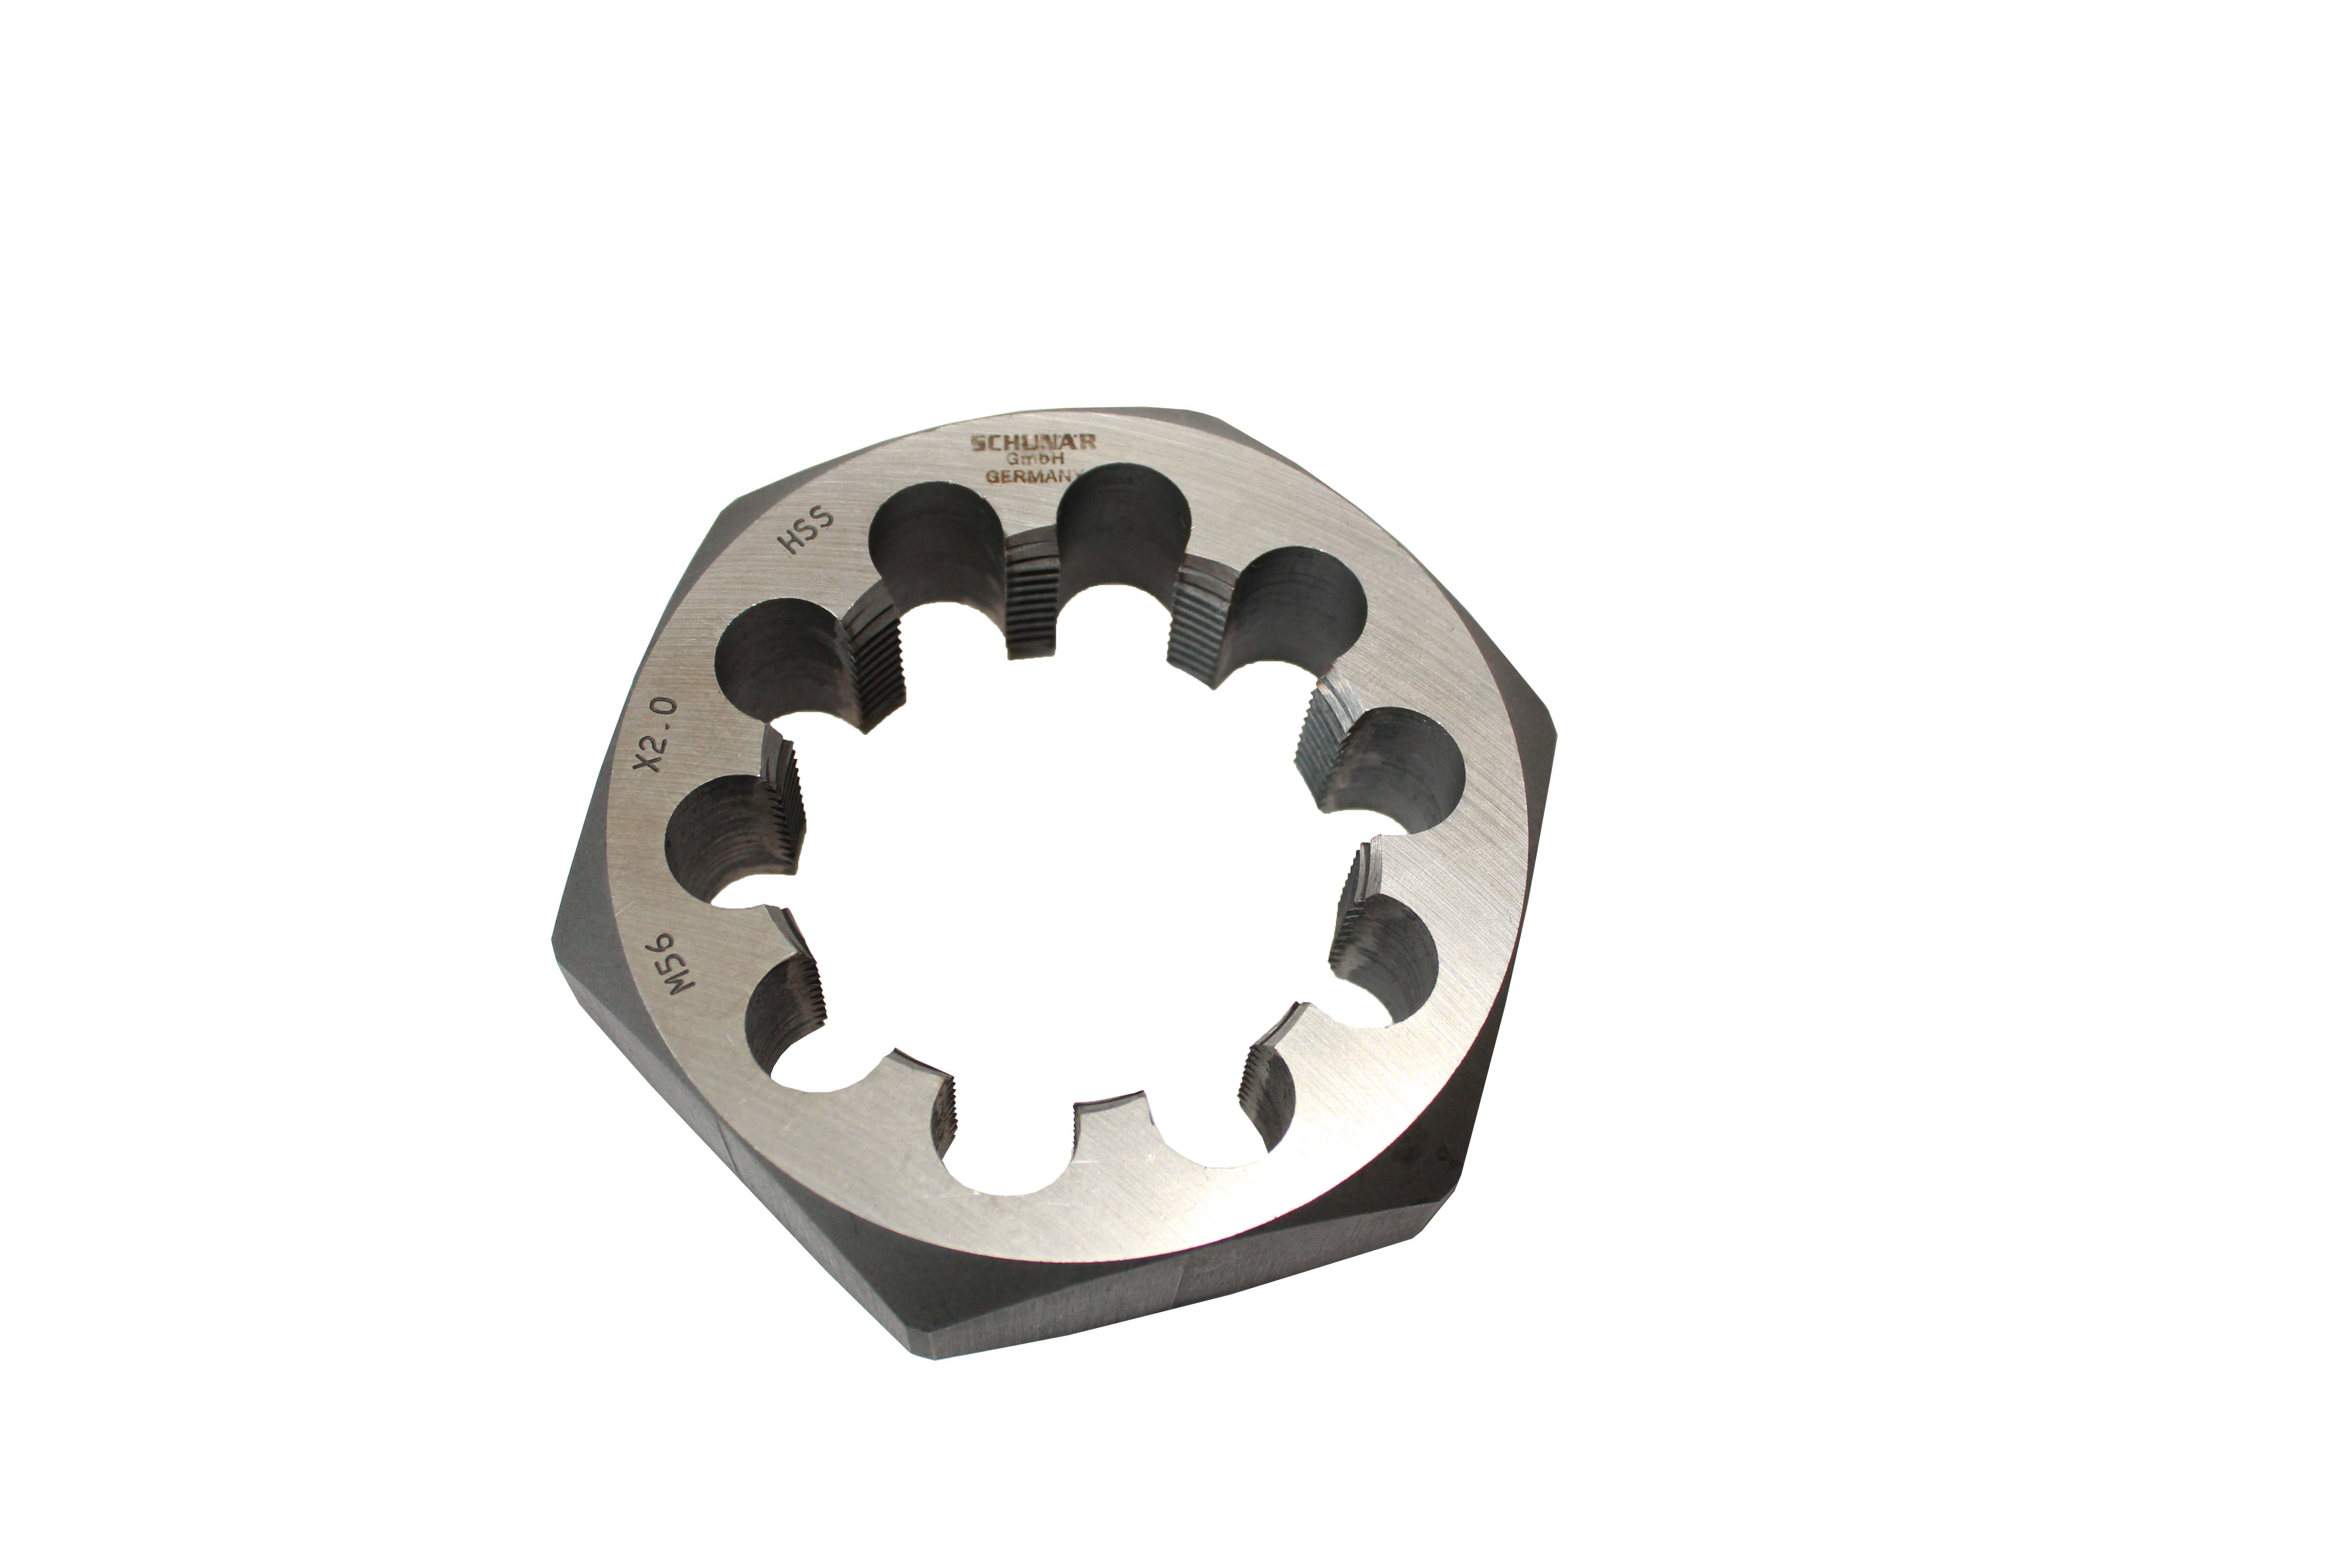 HSS Threading Die Nuts - Inches